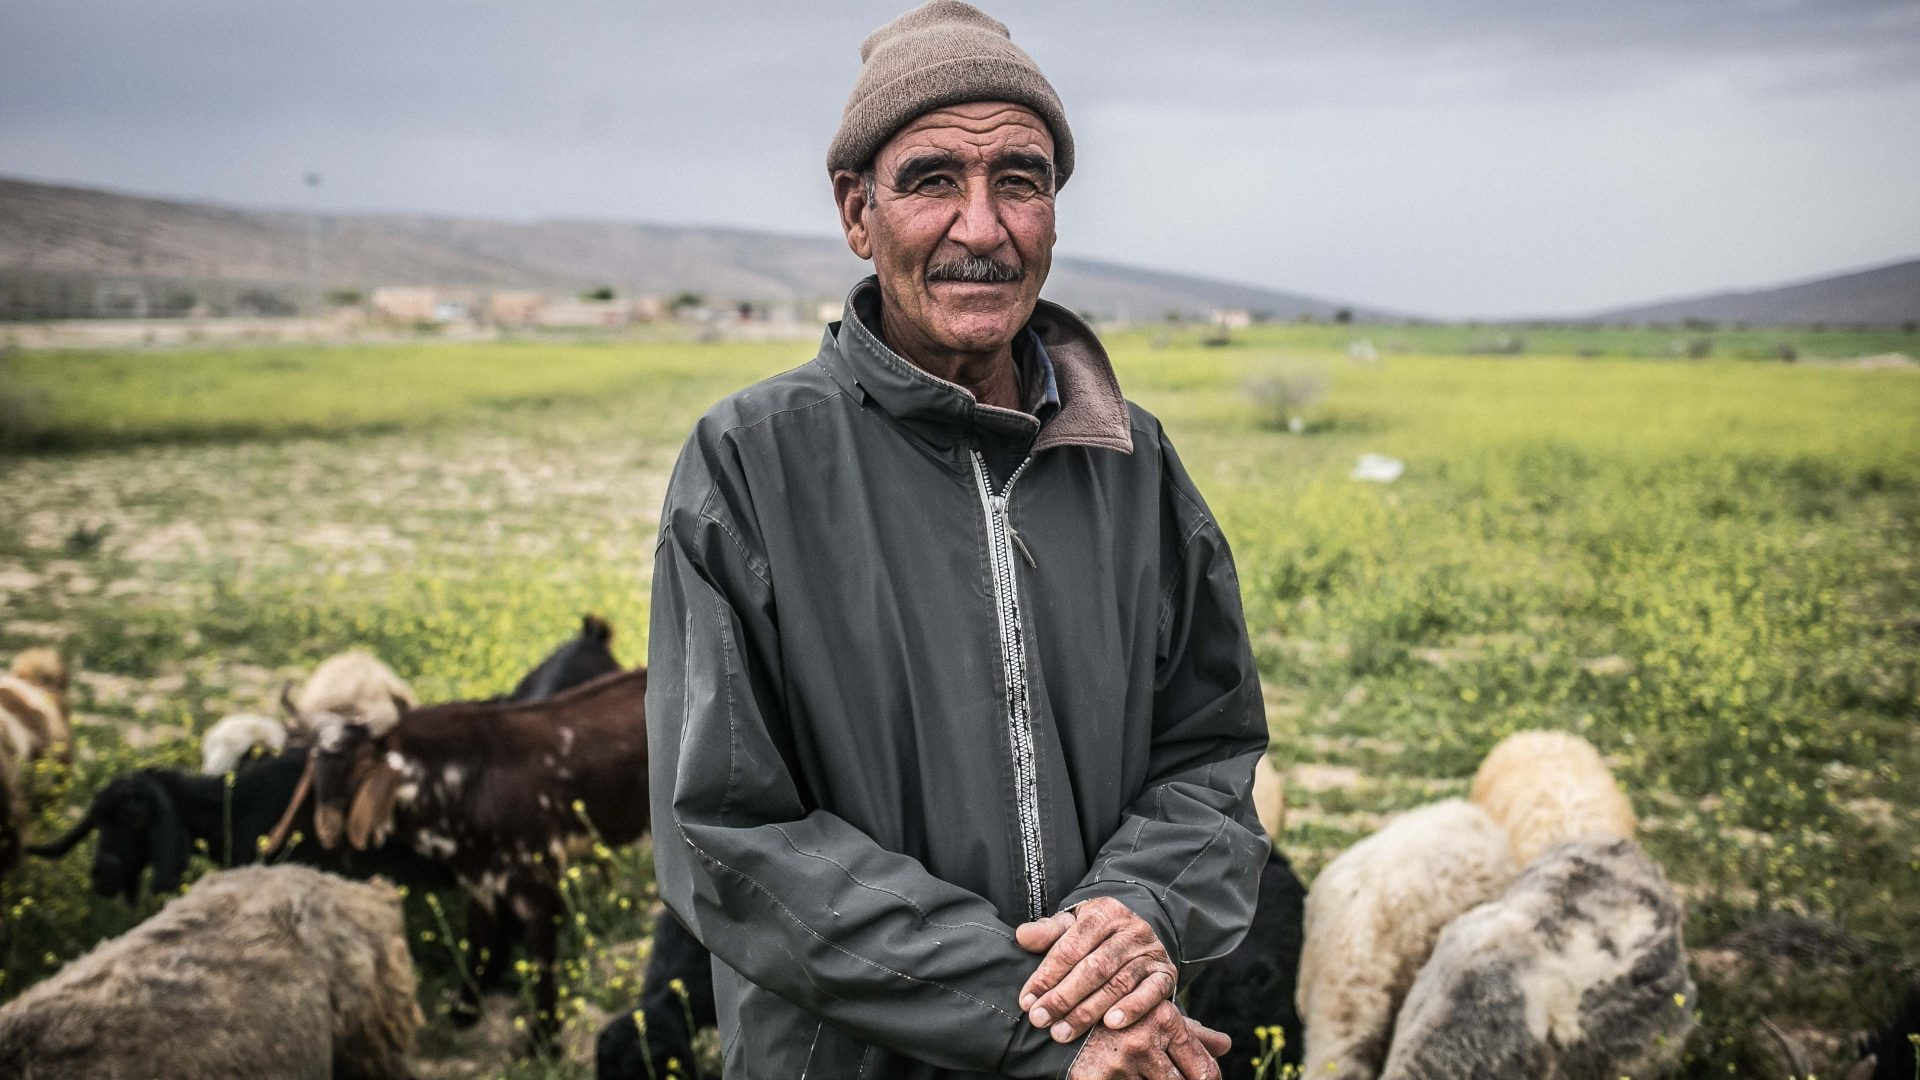 A shepherd from the village of Bozpar, Dashtestan county, Busher province.